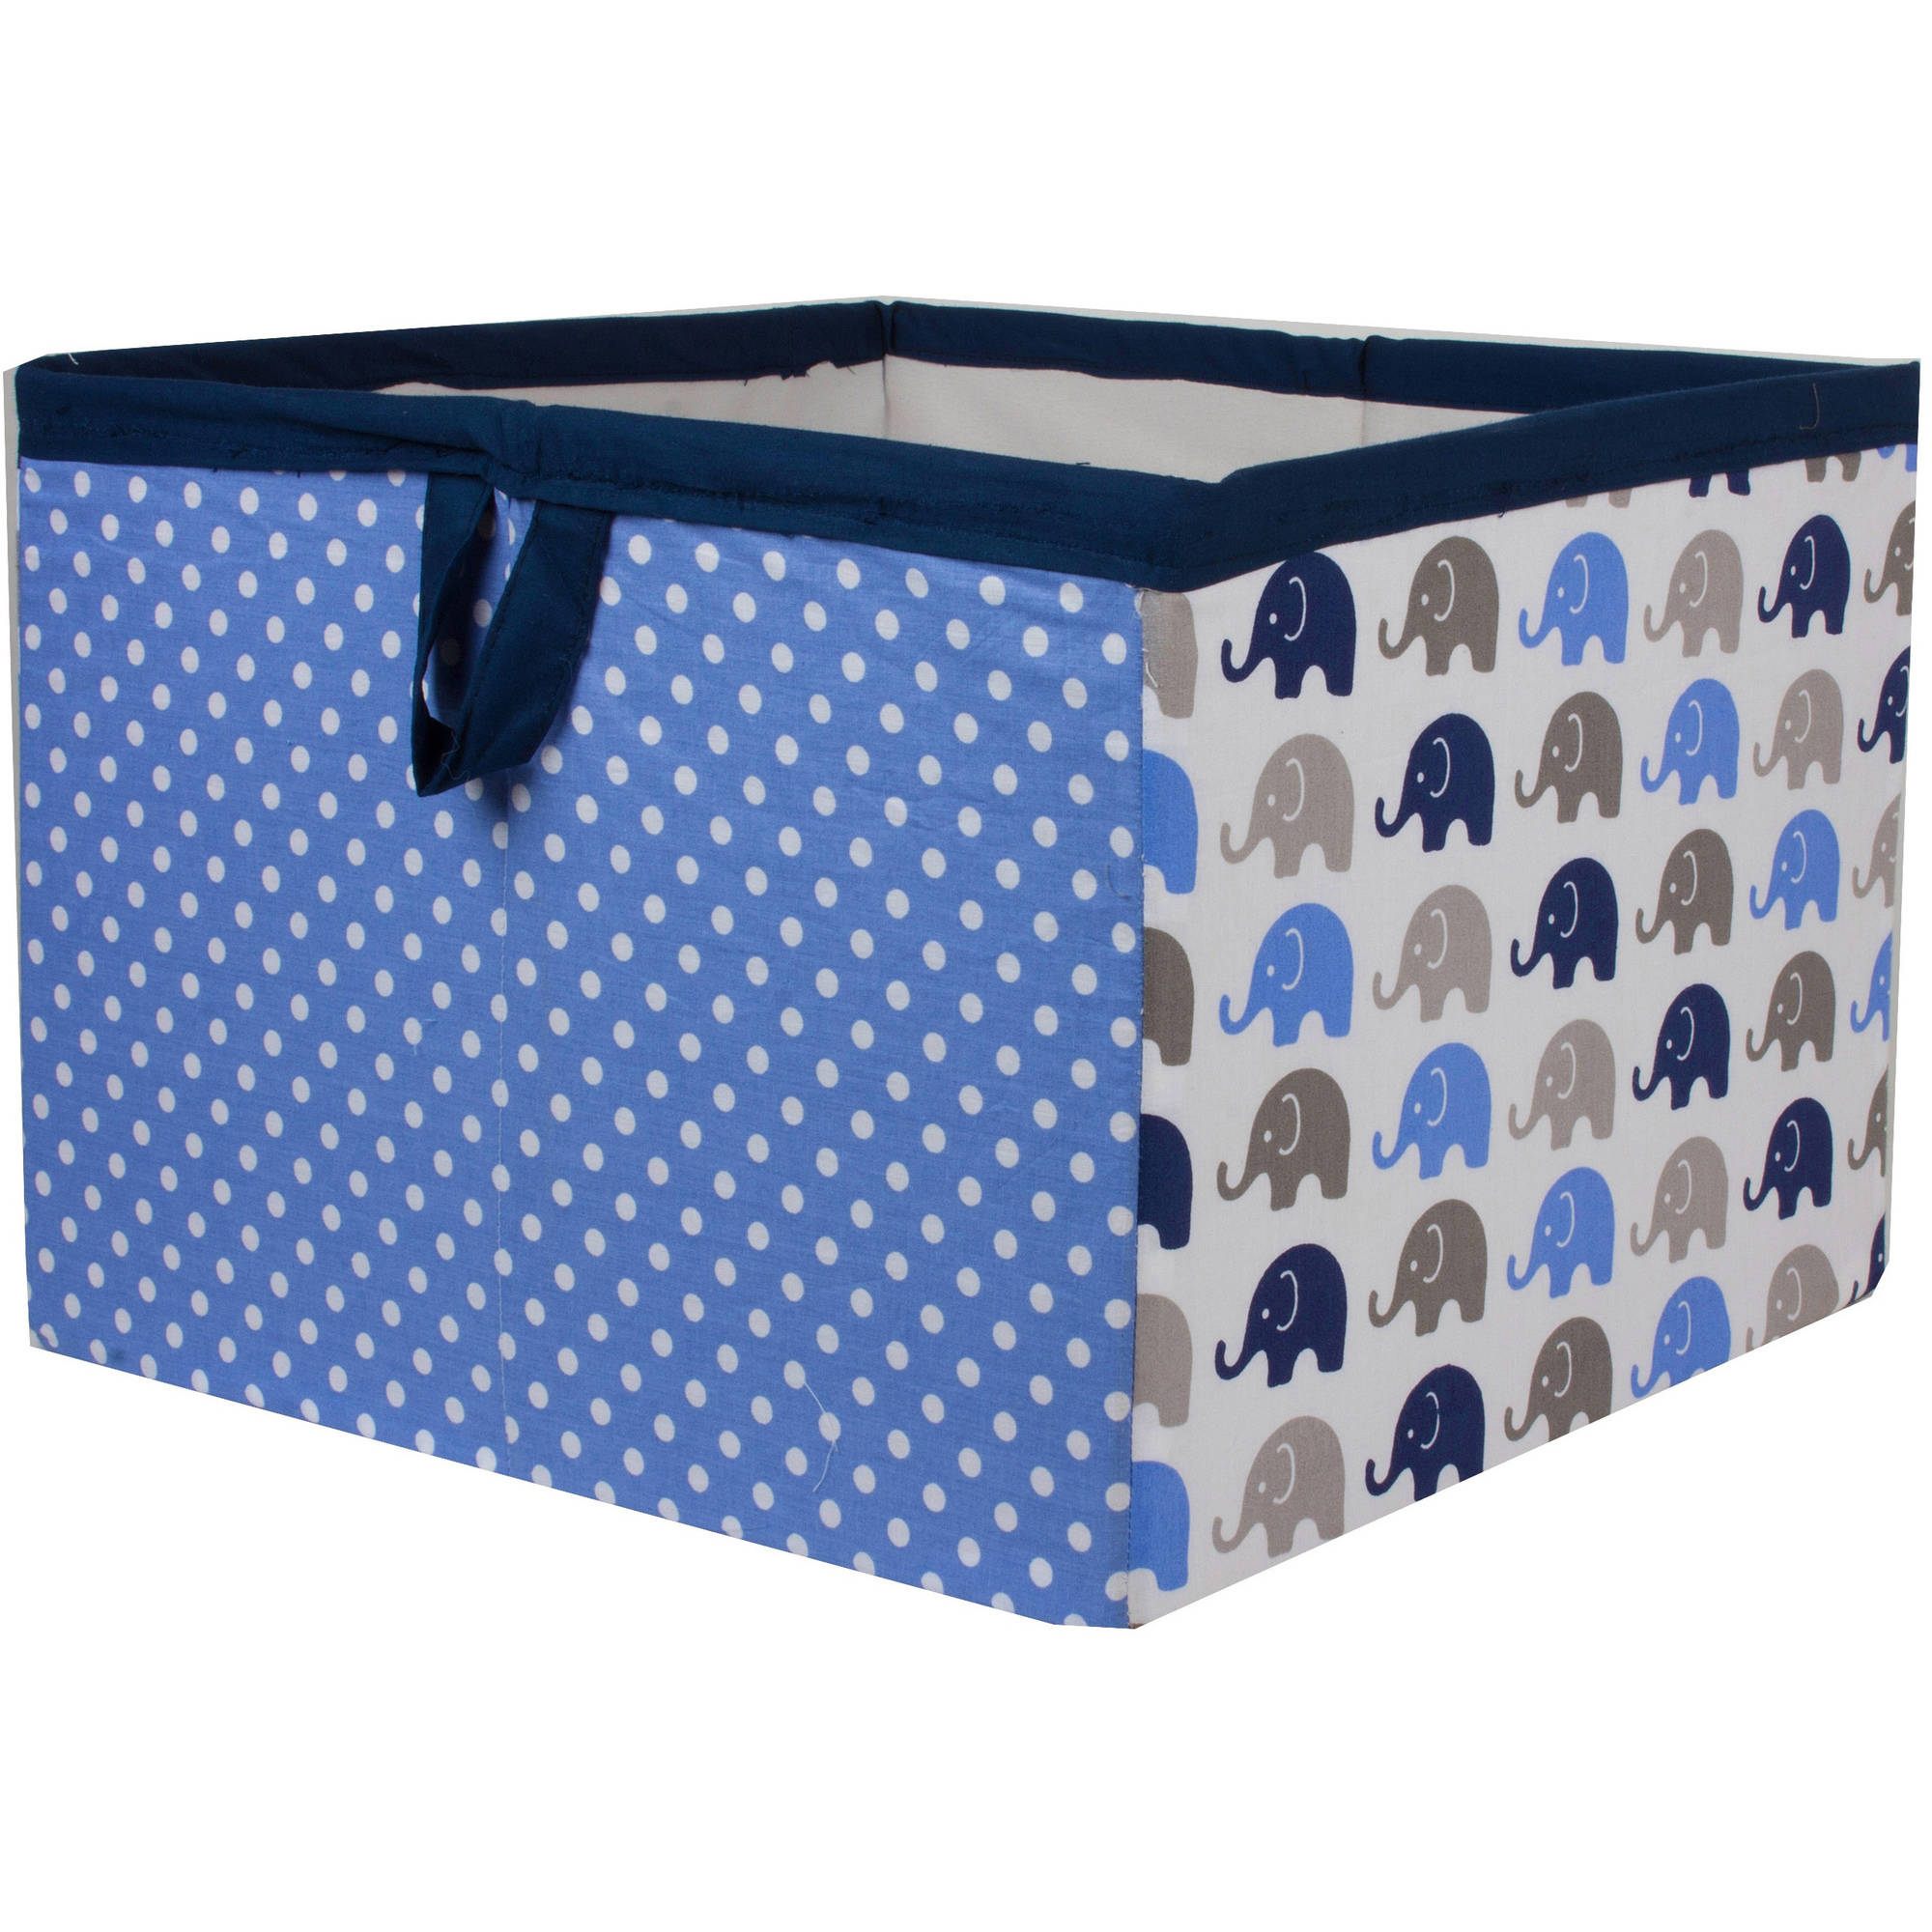 Bacati - Elephants Blue/Gray Cotton Percale Fabric covered Storage, Large Box, 14 x 14 x 10 inches